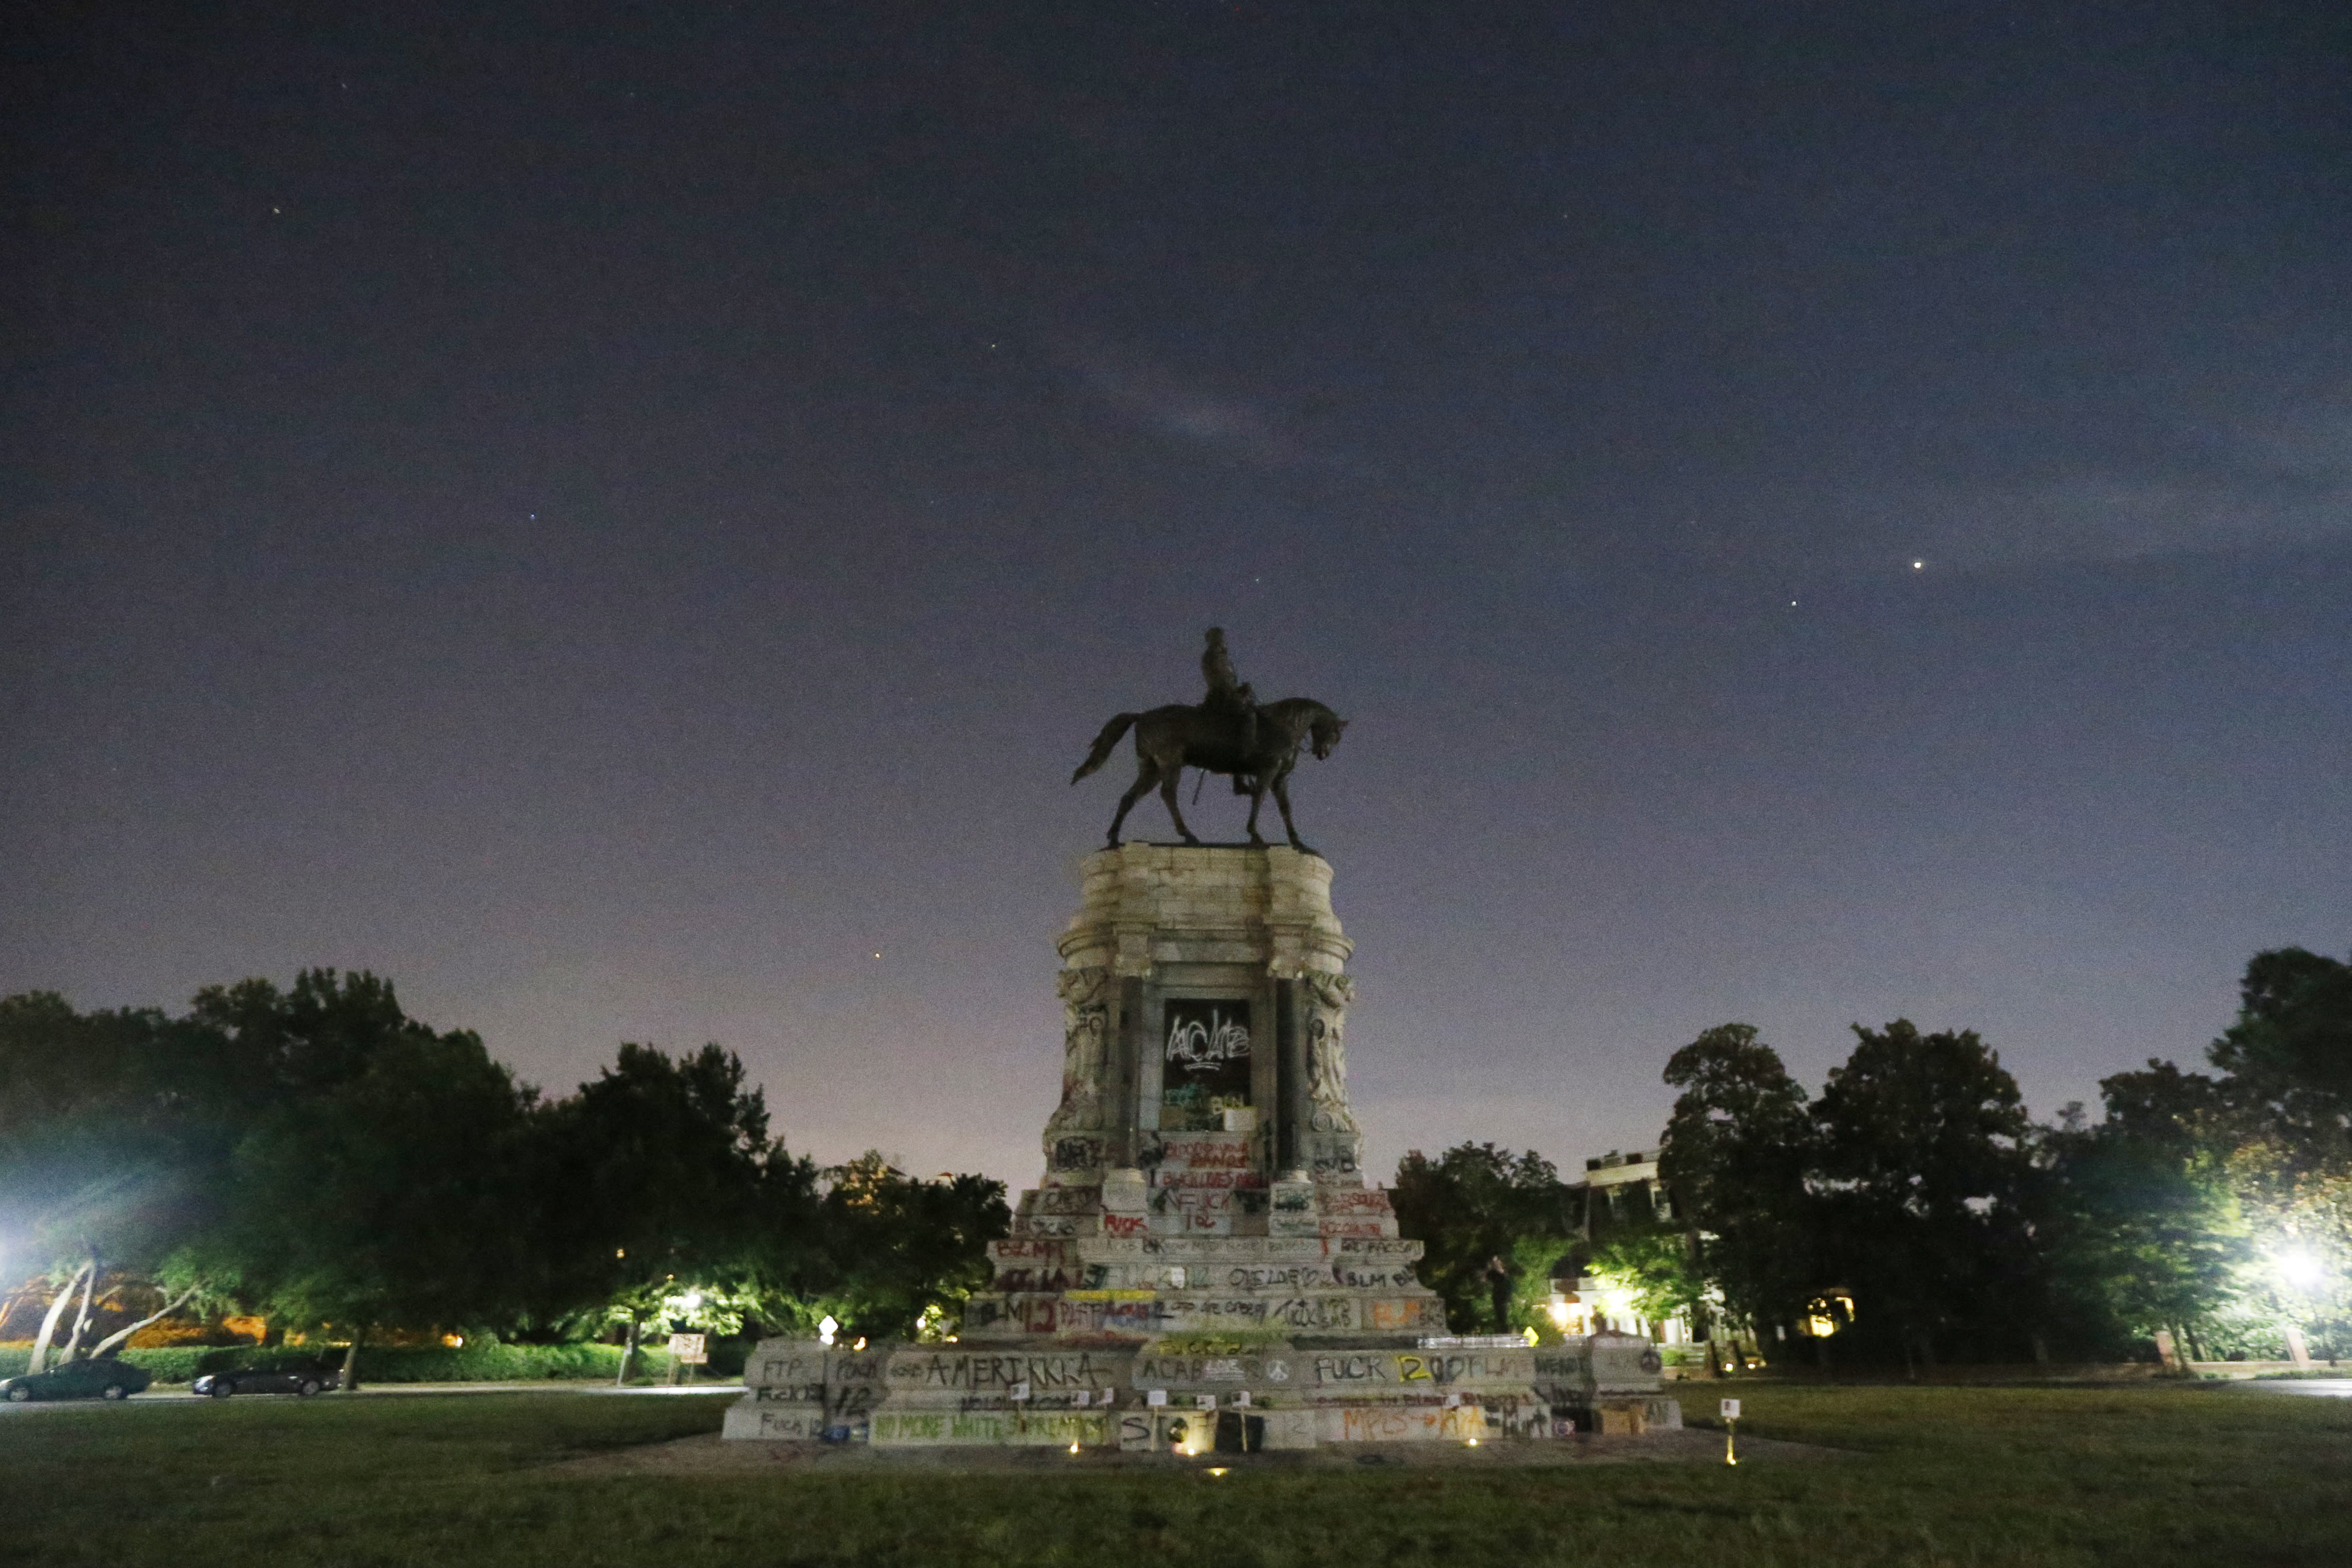 Judge to hold trial on Northam's plans to remove Lee statue